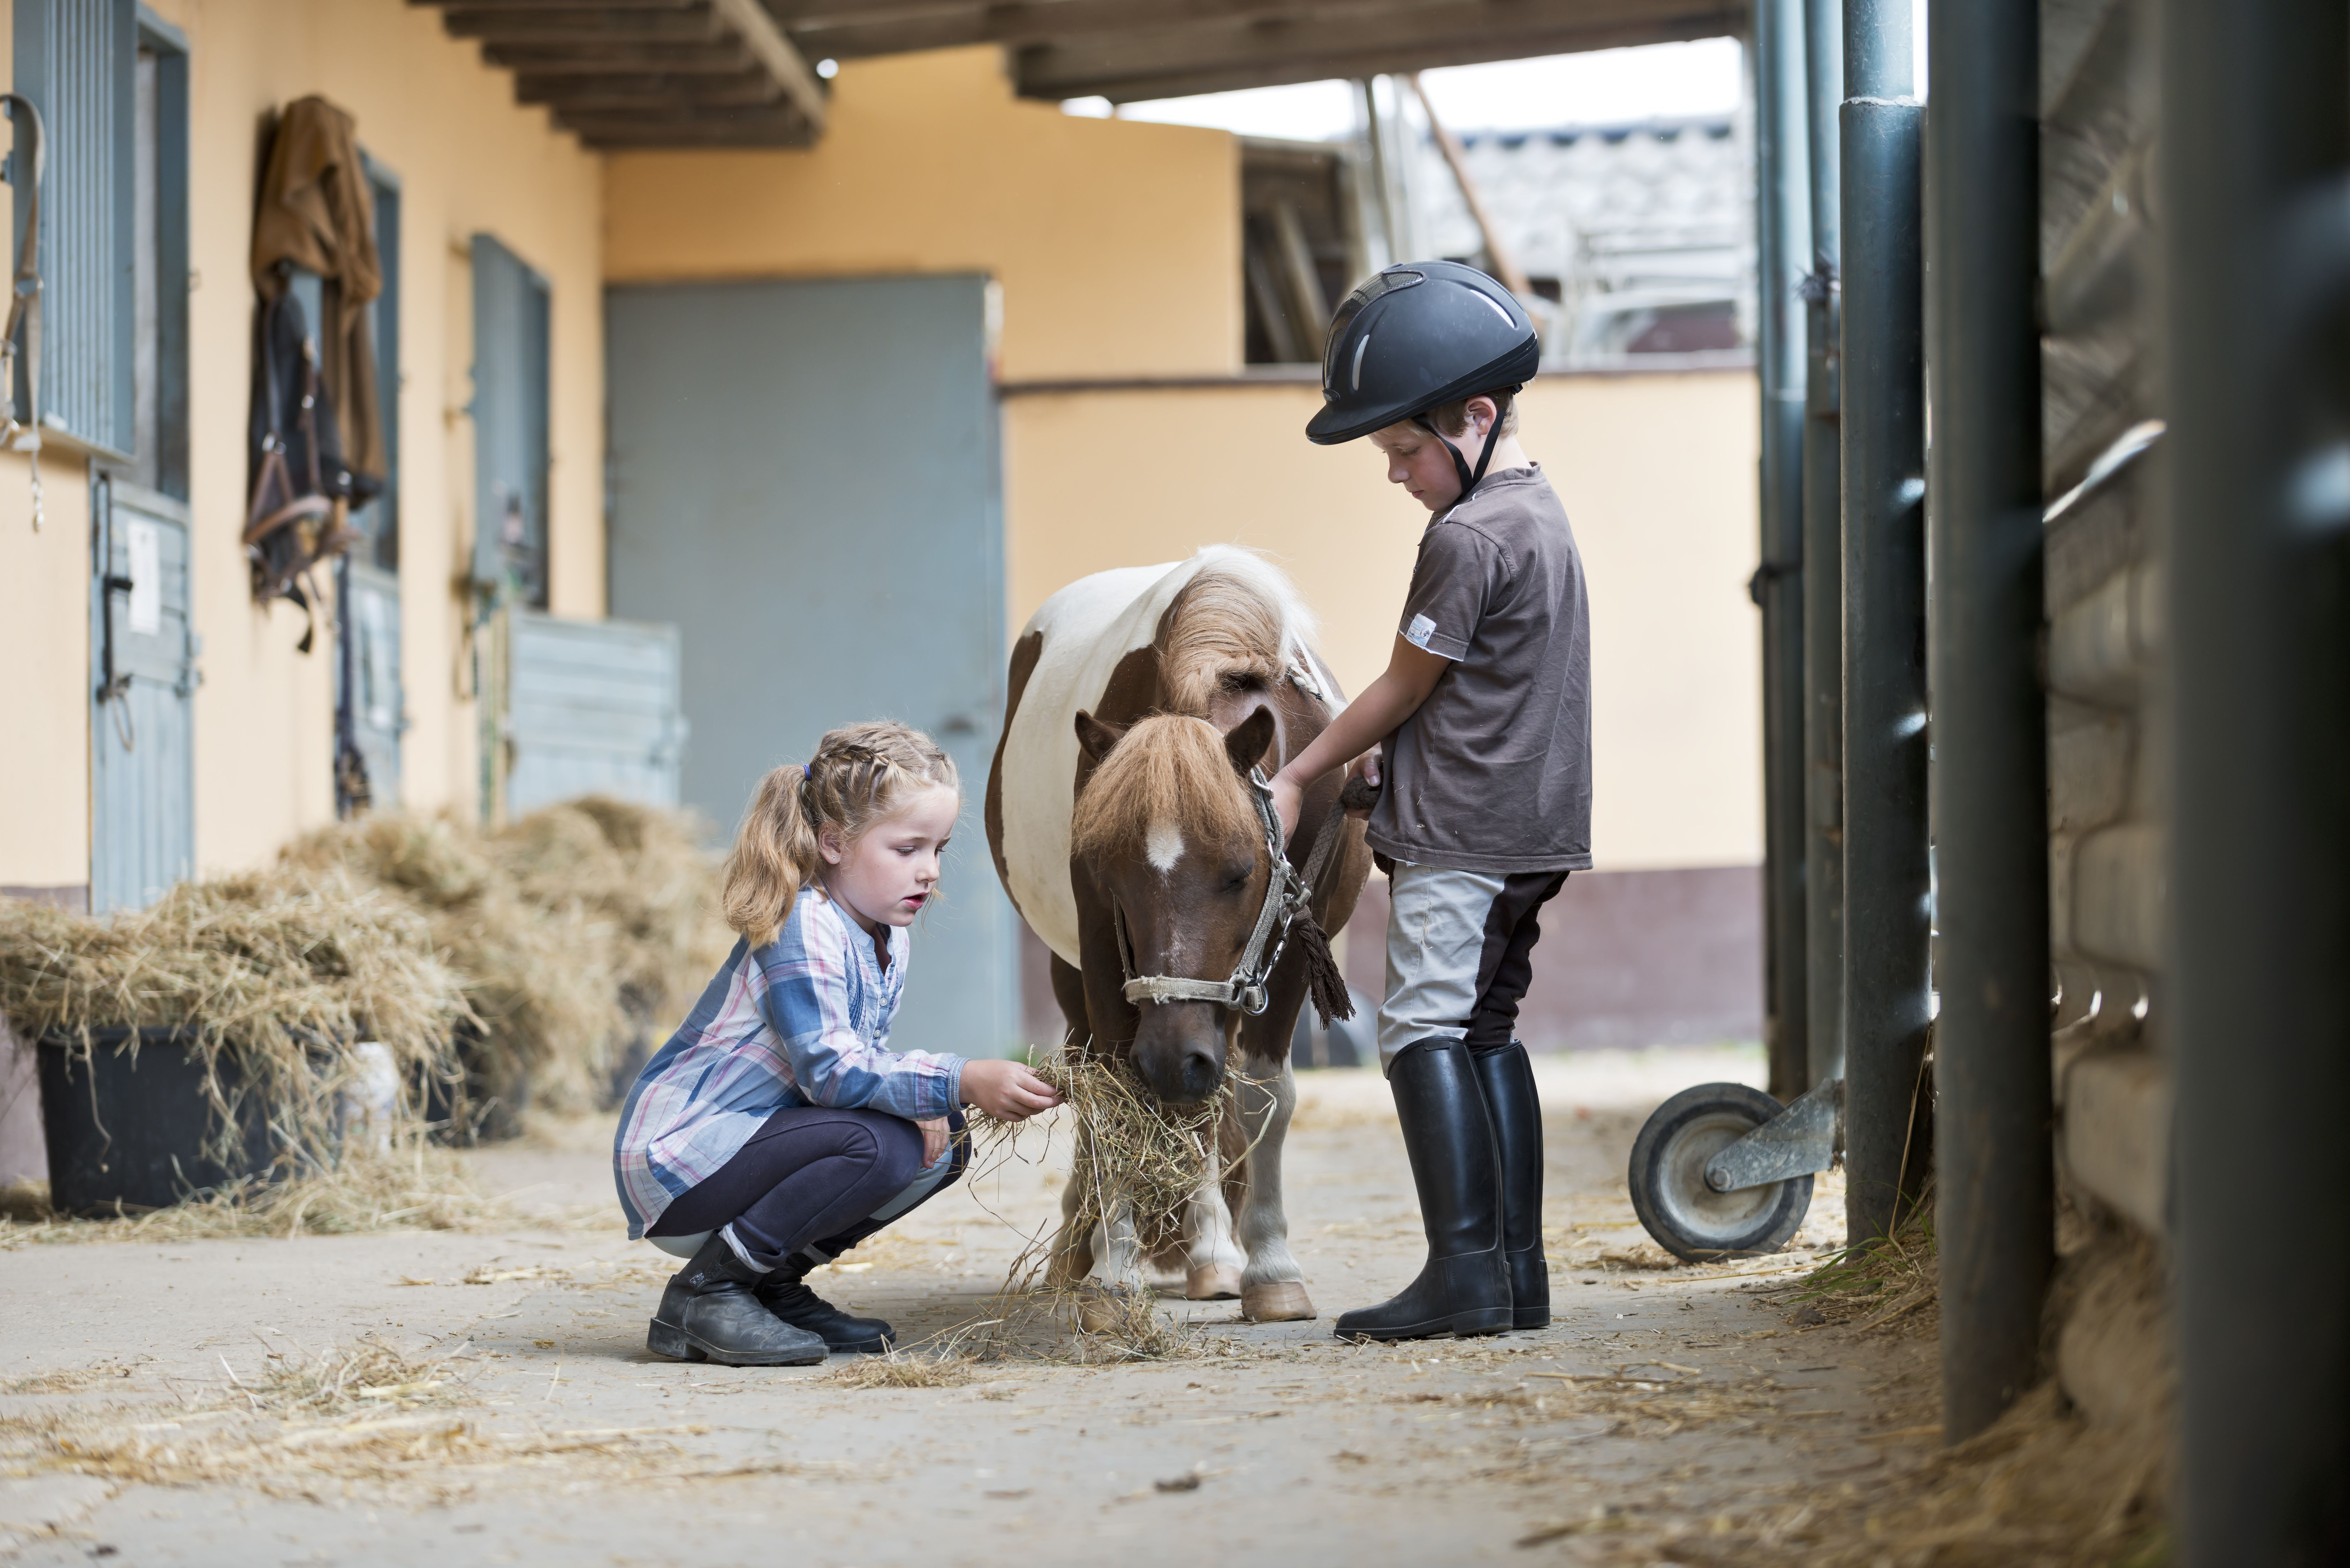 Boy and girl at riding stable with a Shetland pony